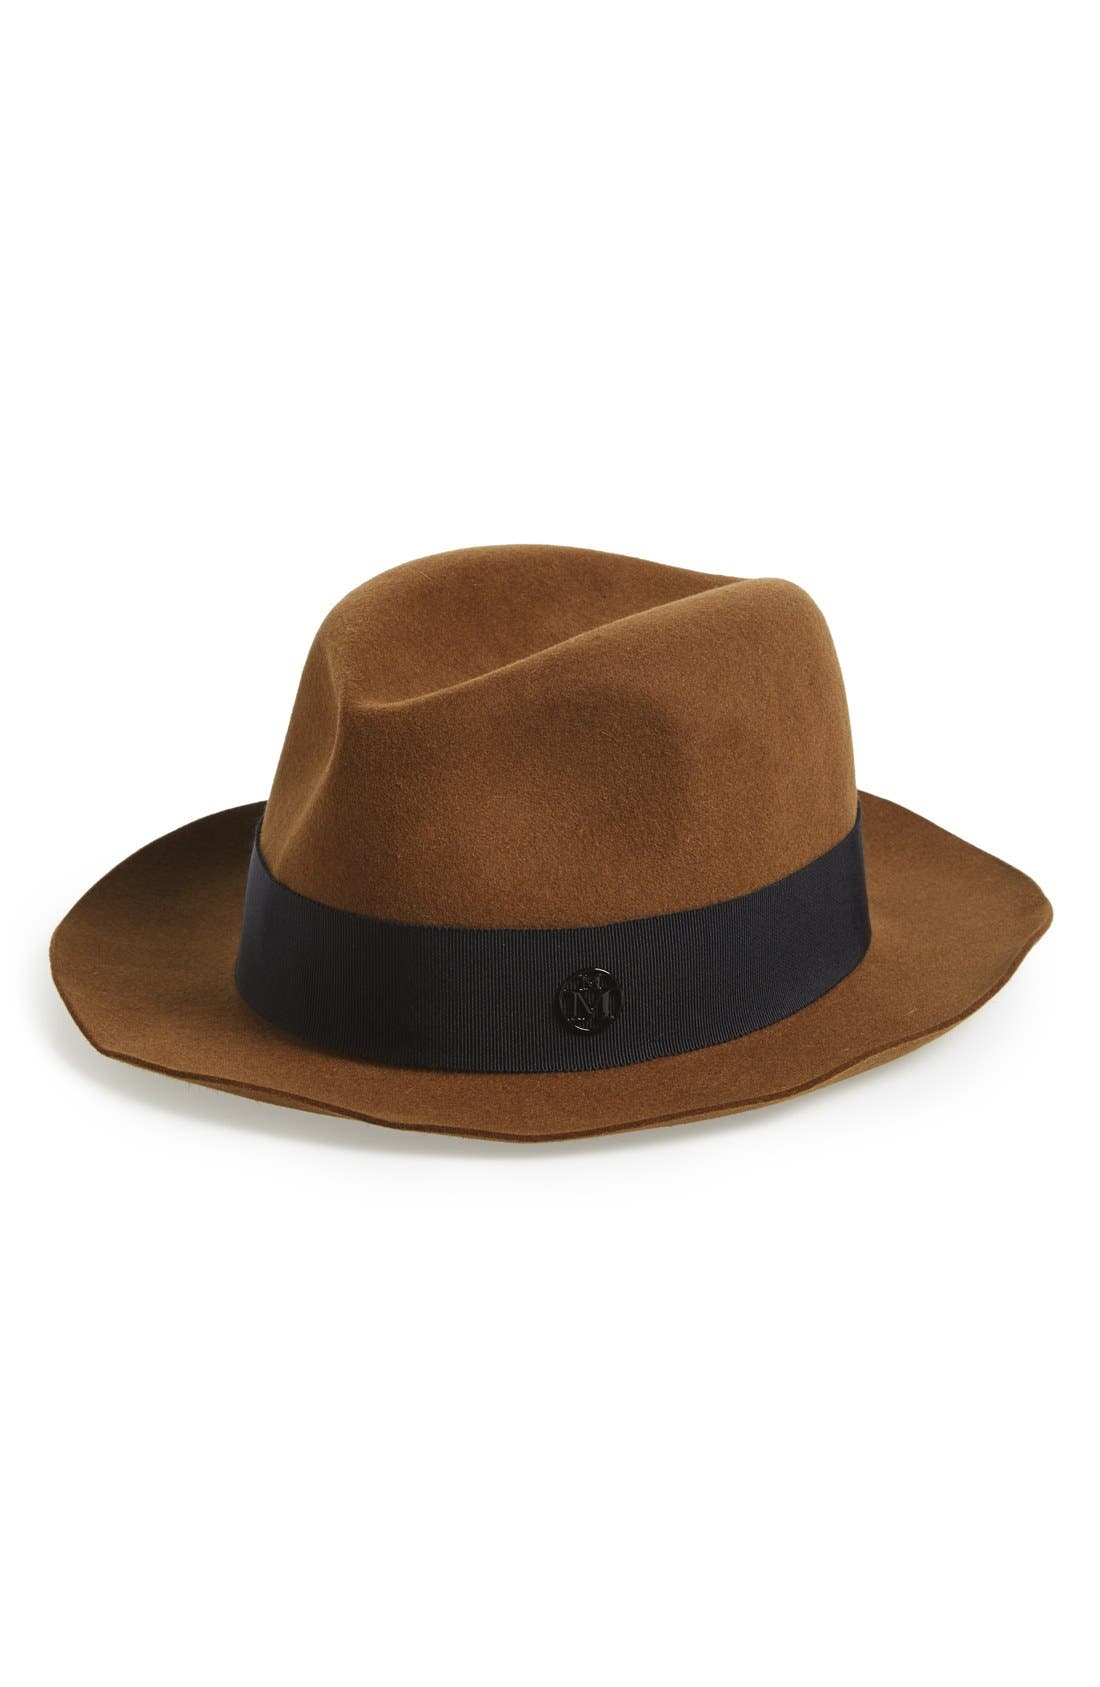 Joseph Fur Felt Hat,                             Main thumbnail 1, color,                             Camel